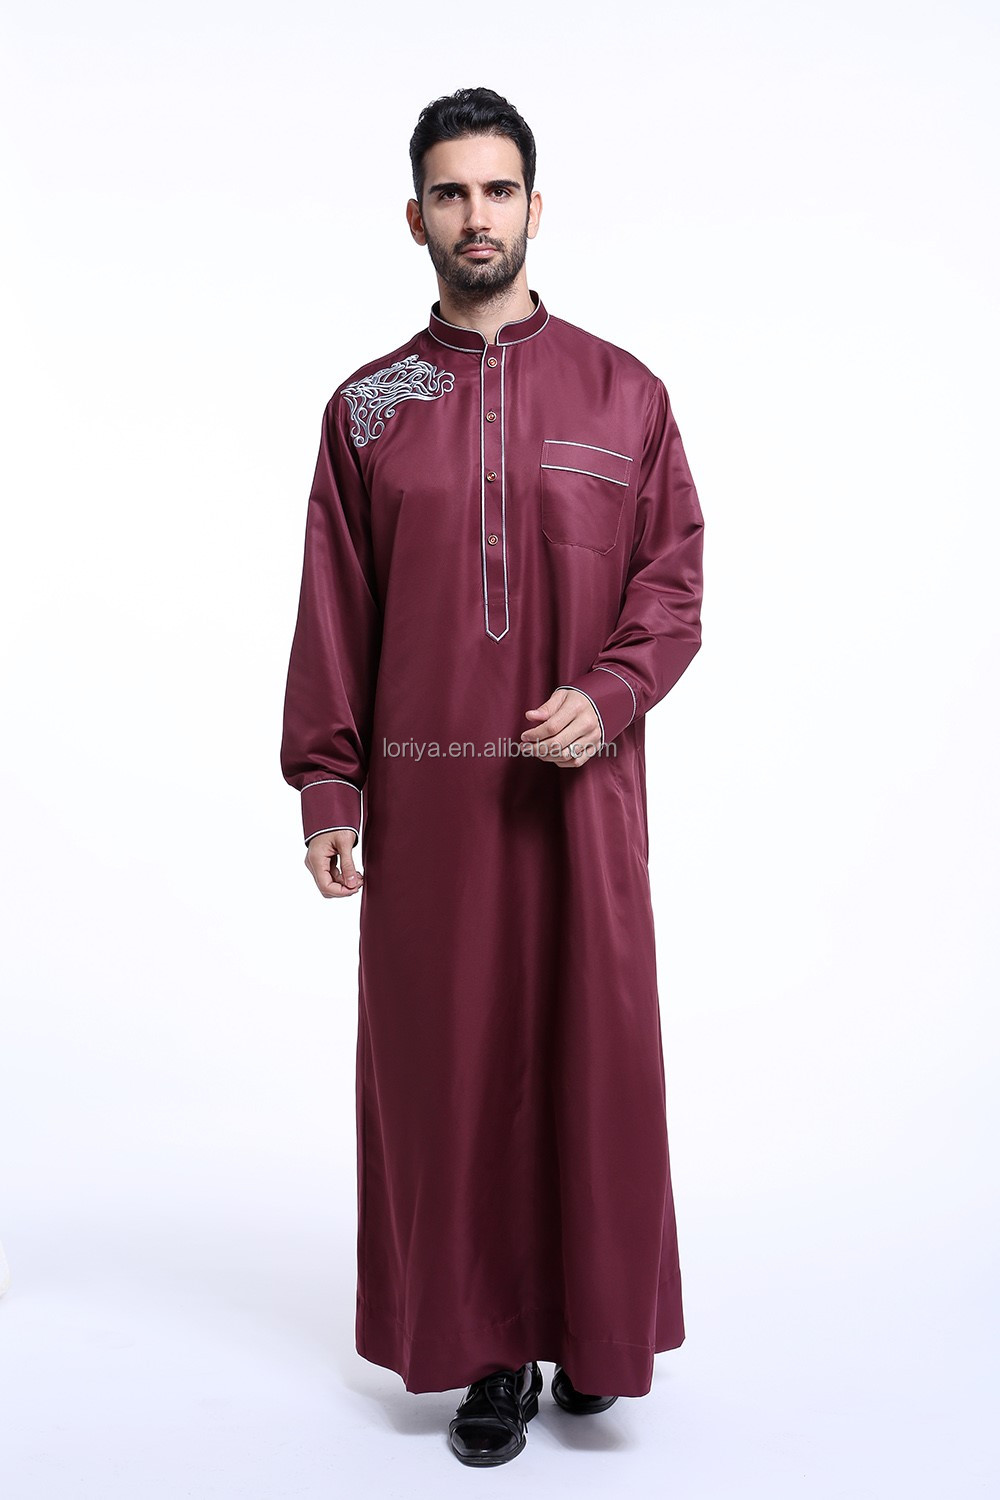 Islamic abaya new model abaya in dubai latest muslim dress abaya